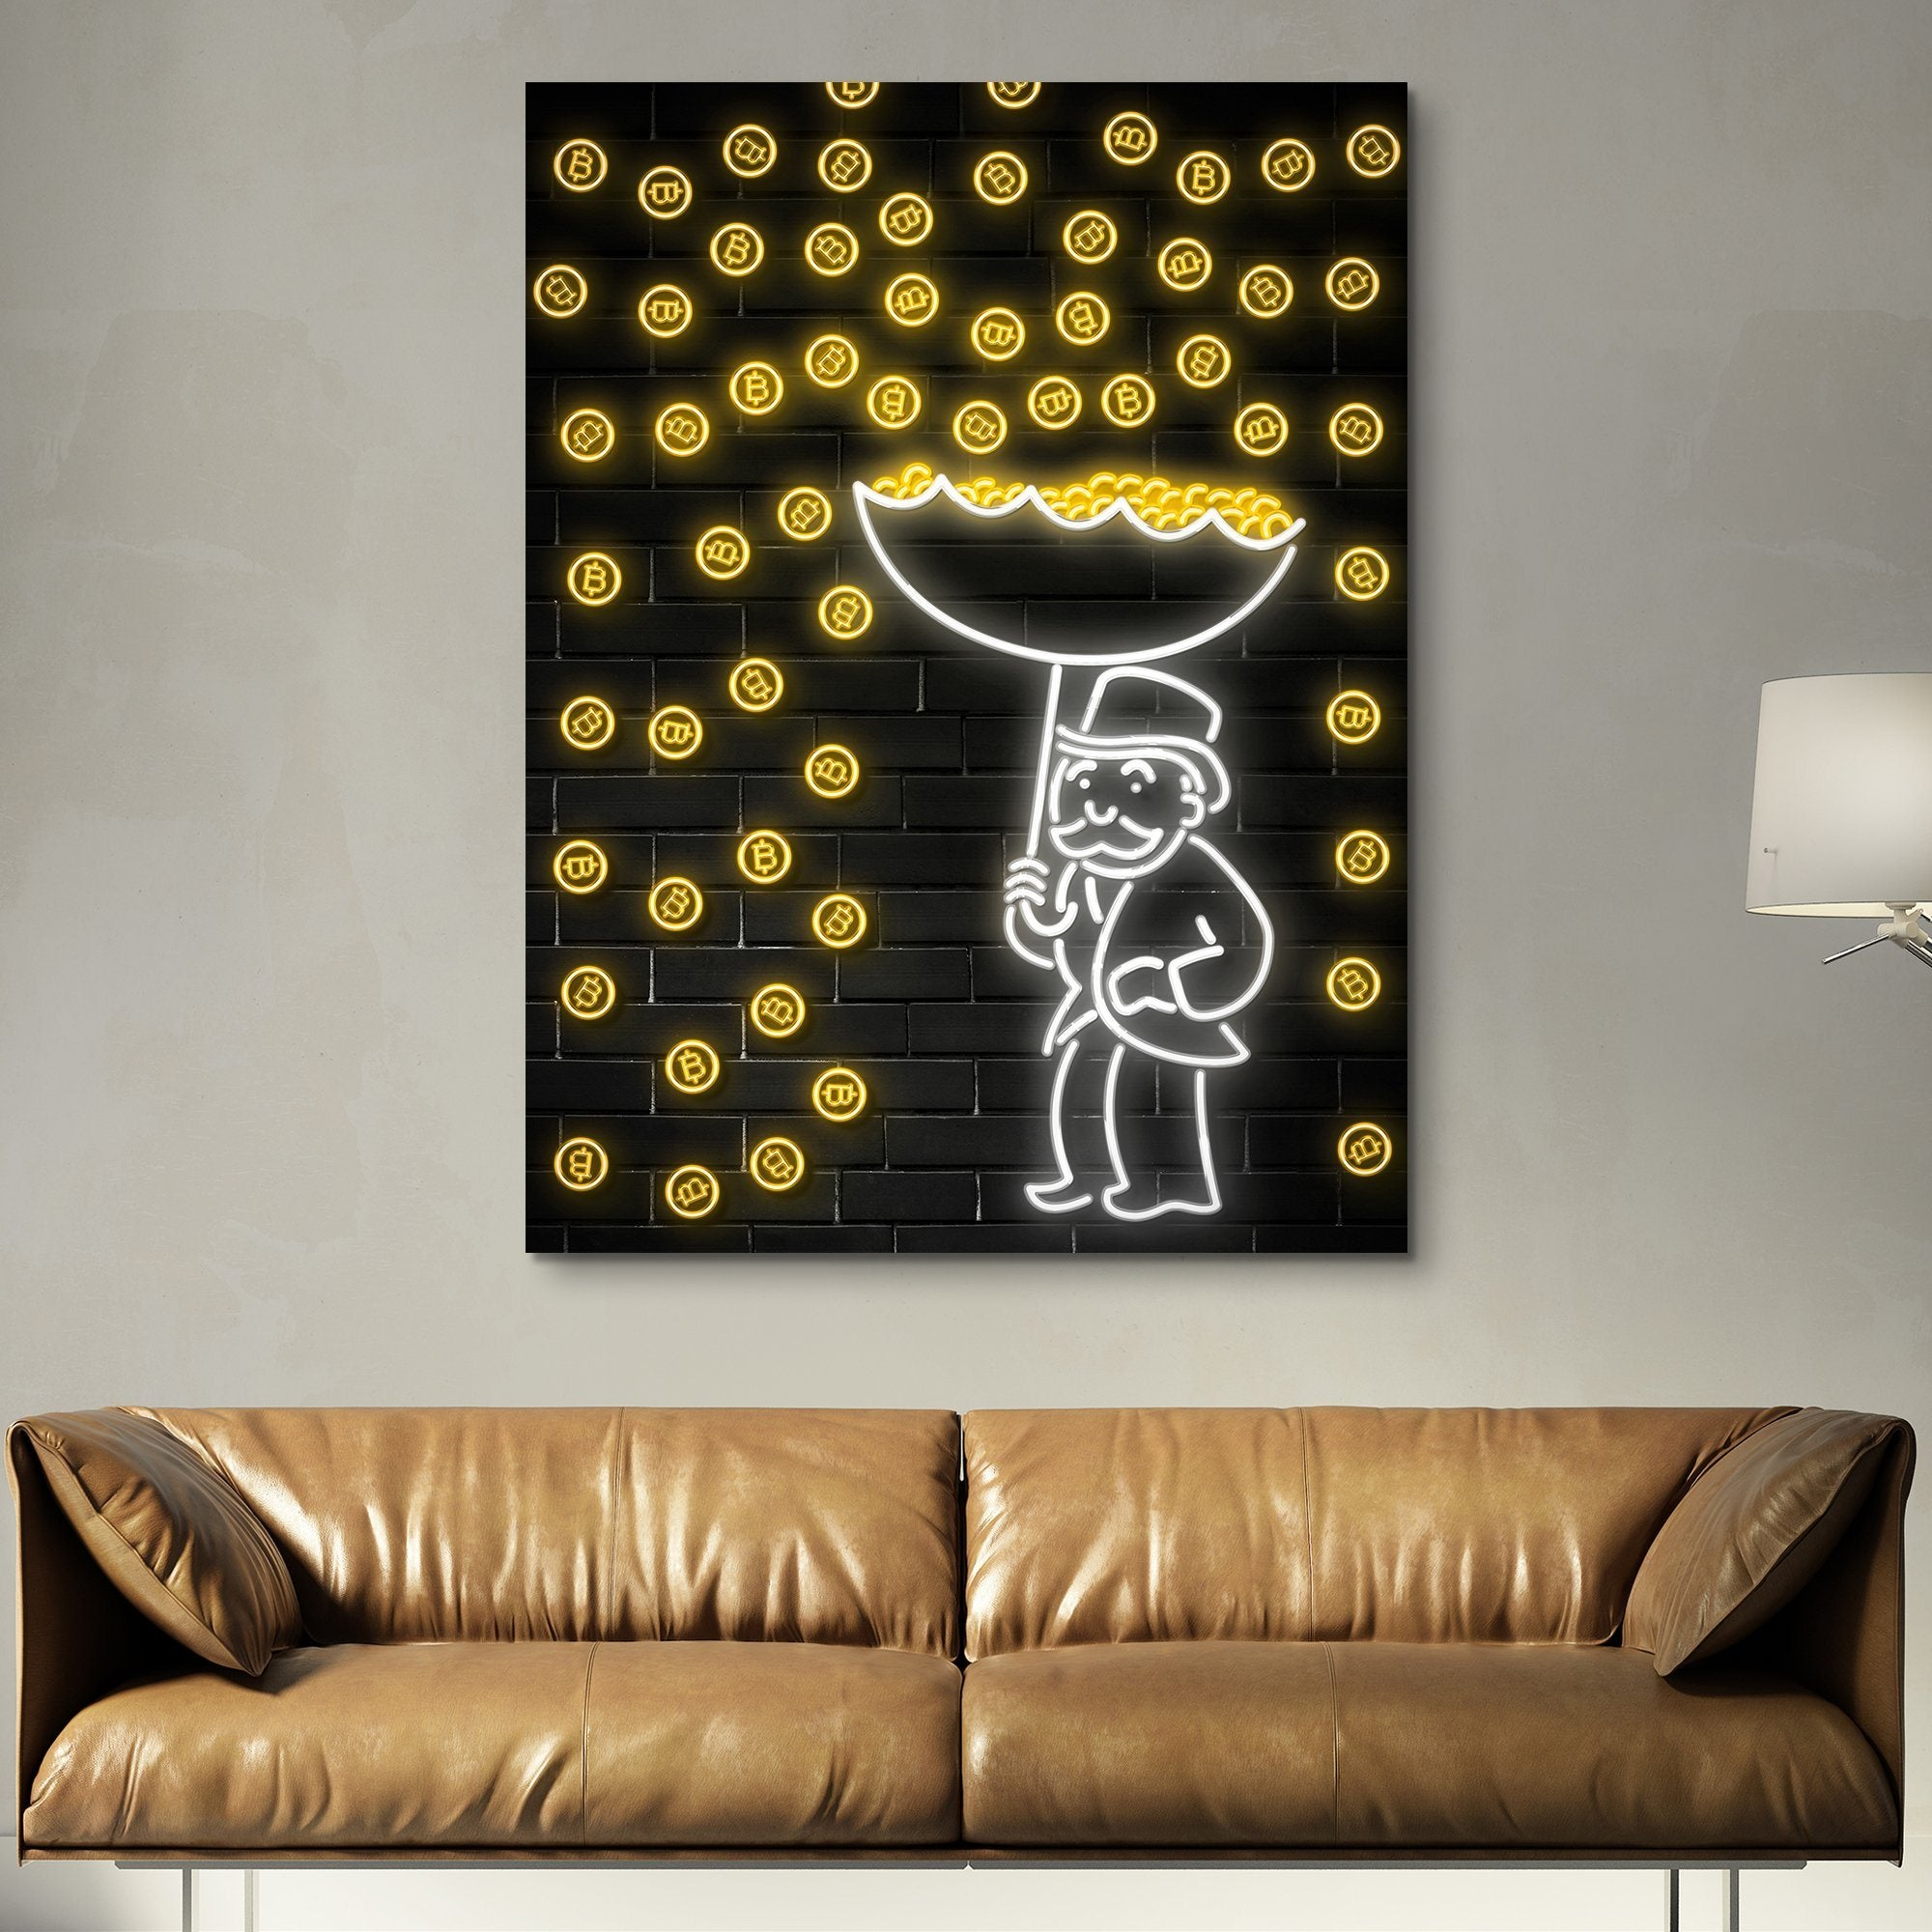 Bitcoin Rain wall art